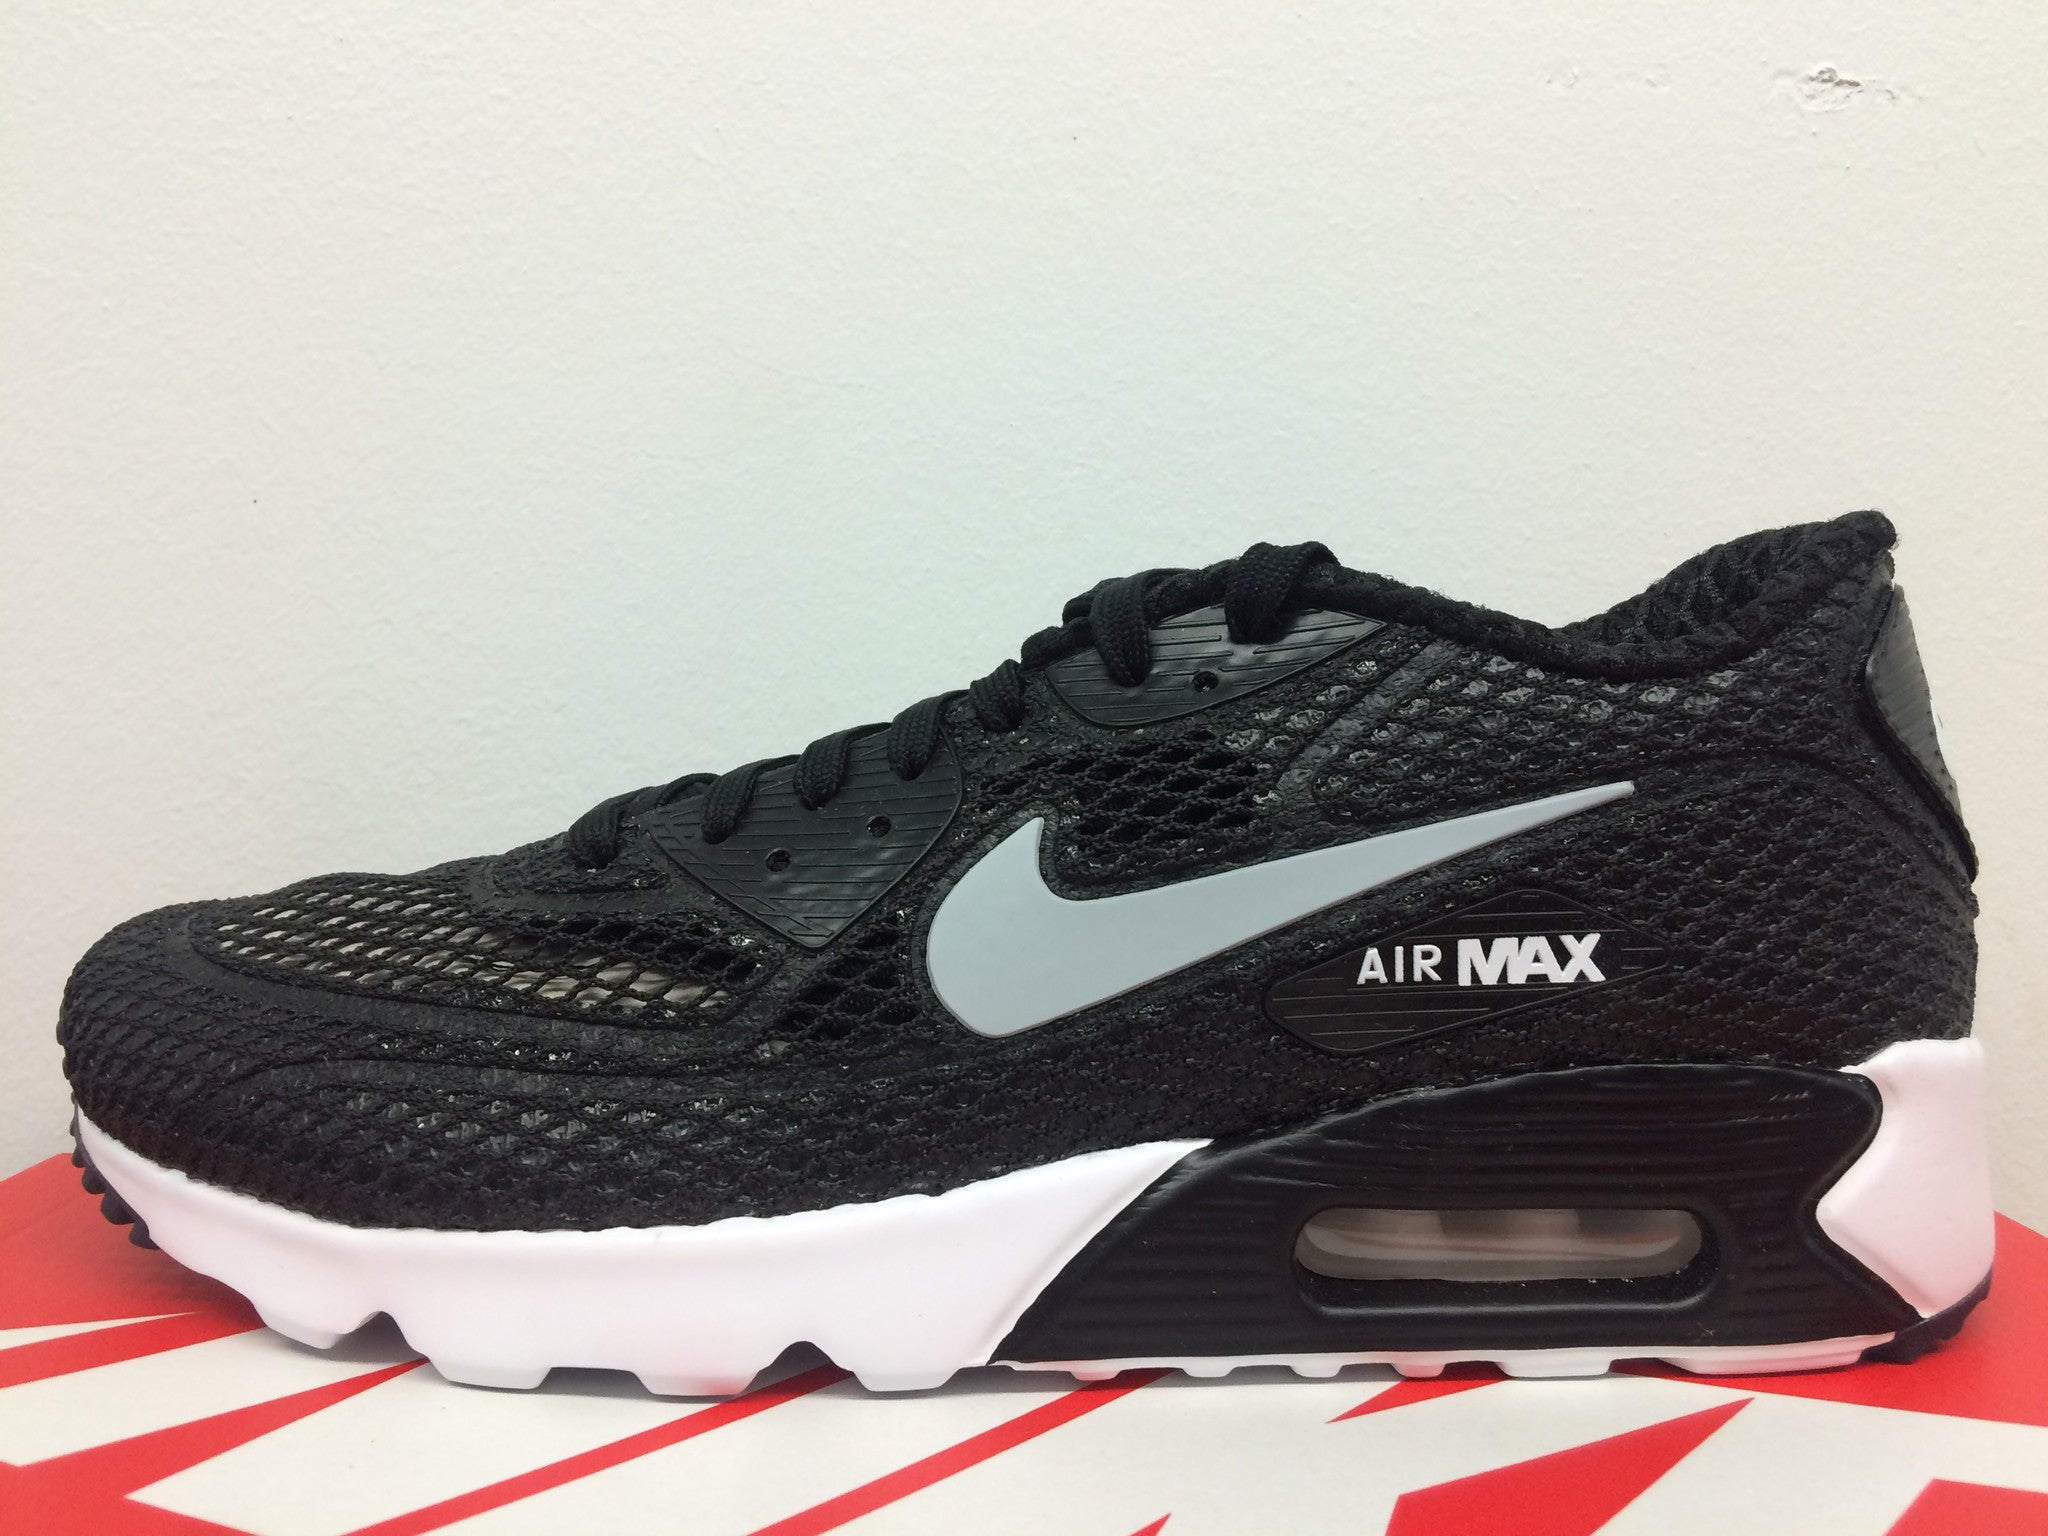 Nike Air Max 90 Ultra BR Premium QS Black 810170 002